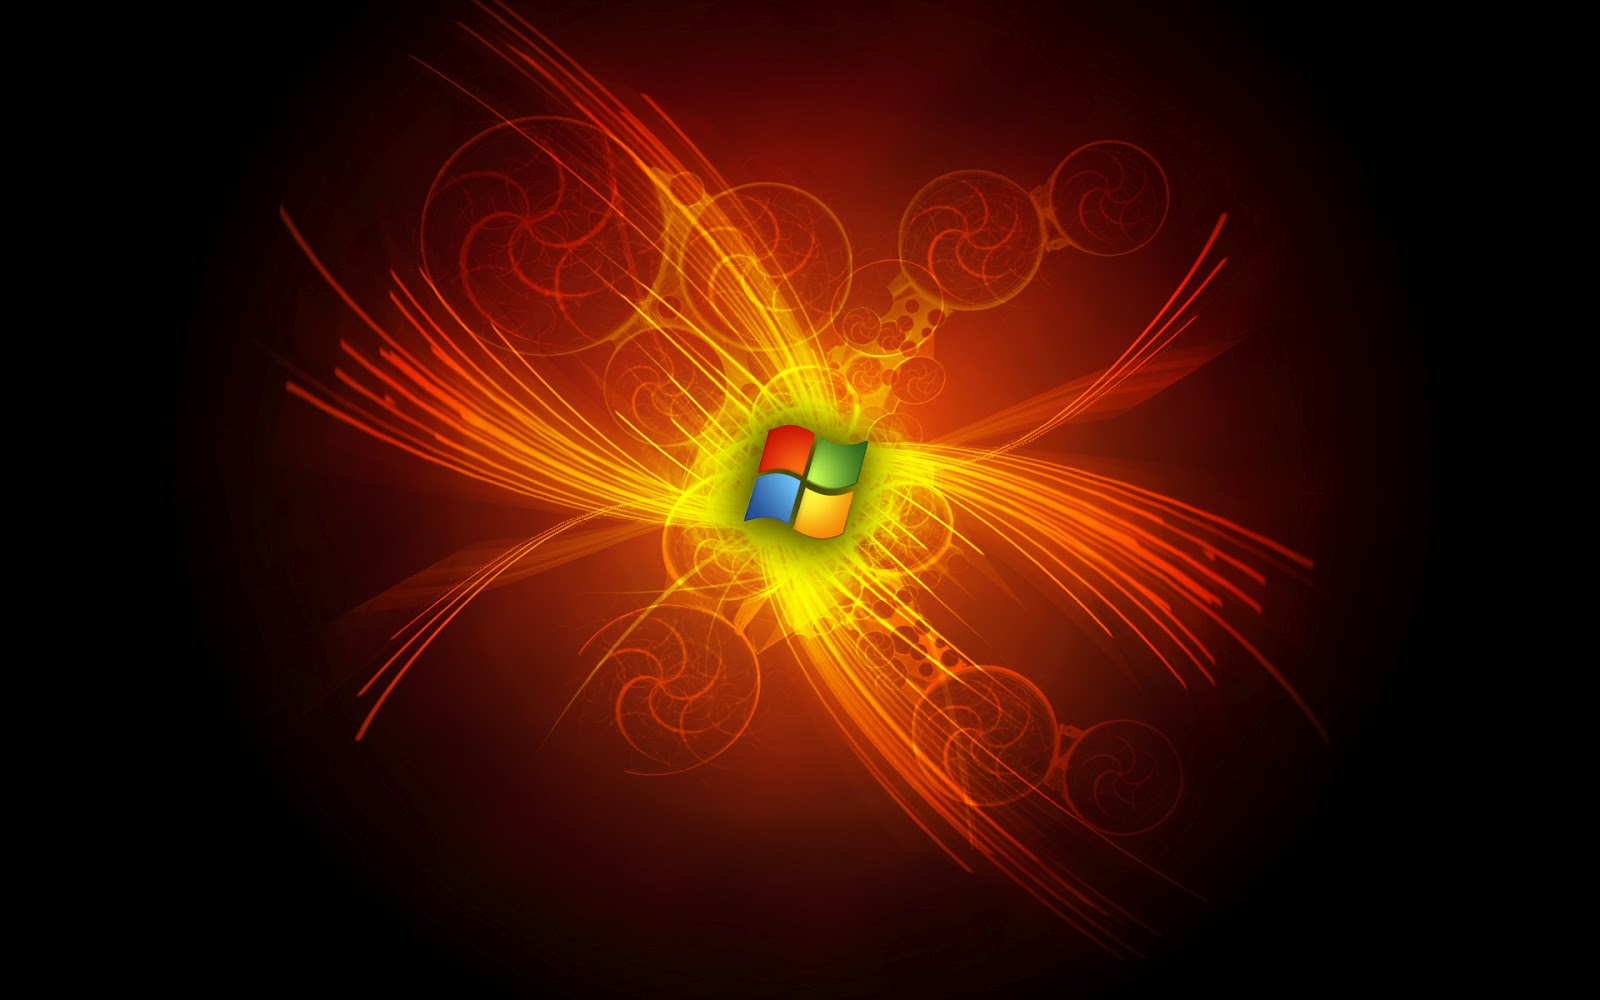 Windows 7 HD Wallpapers Free Download ~ SEO Urdu Pakistan